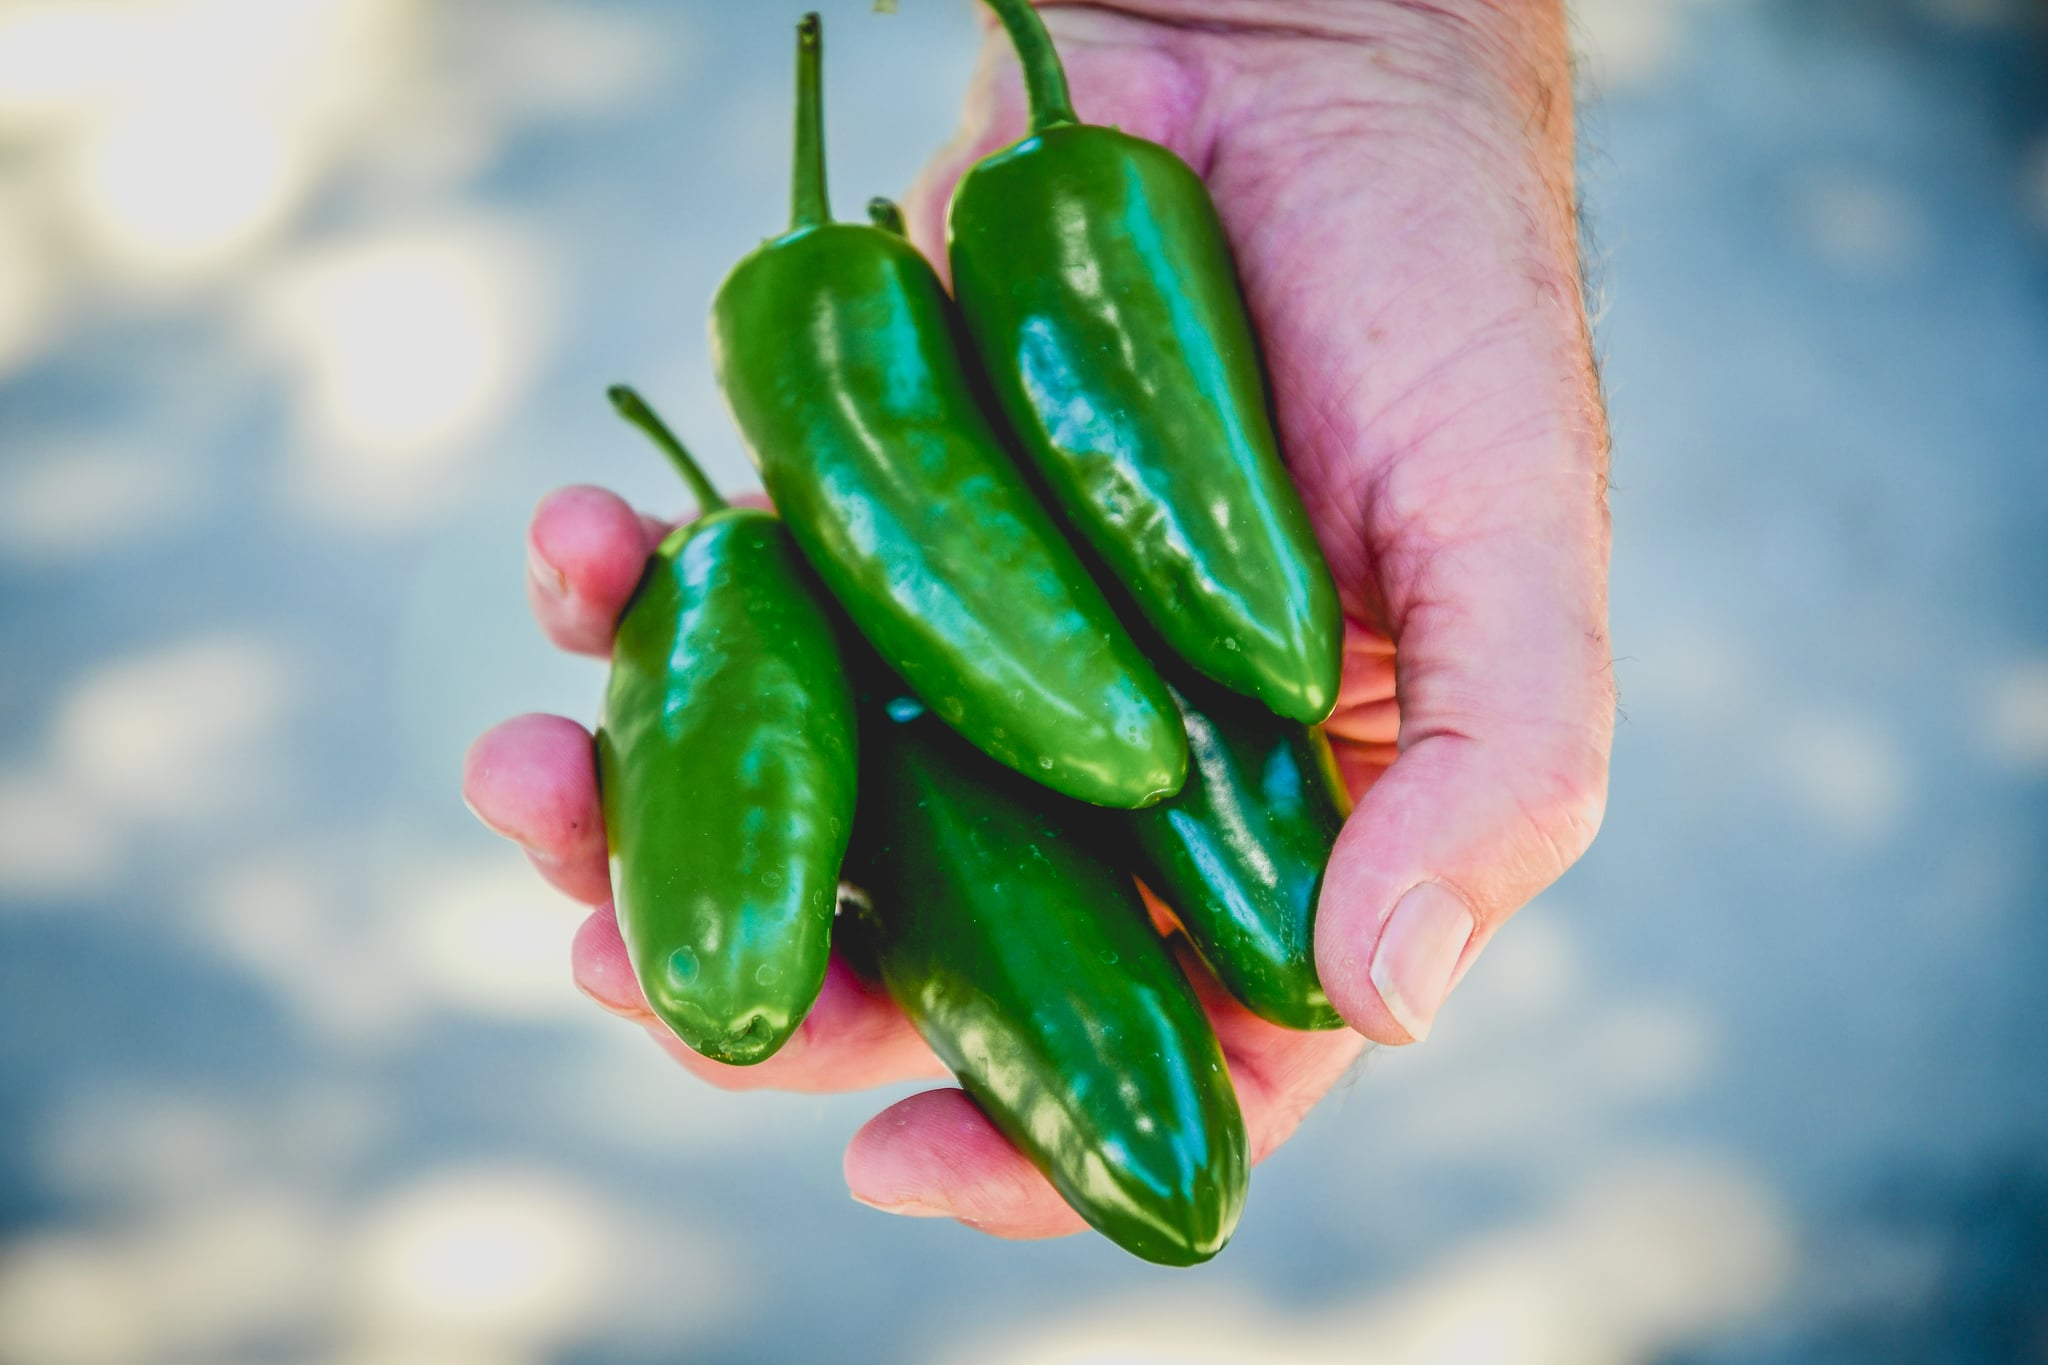 Hand holding jalapeno peppers fresh from the garden